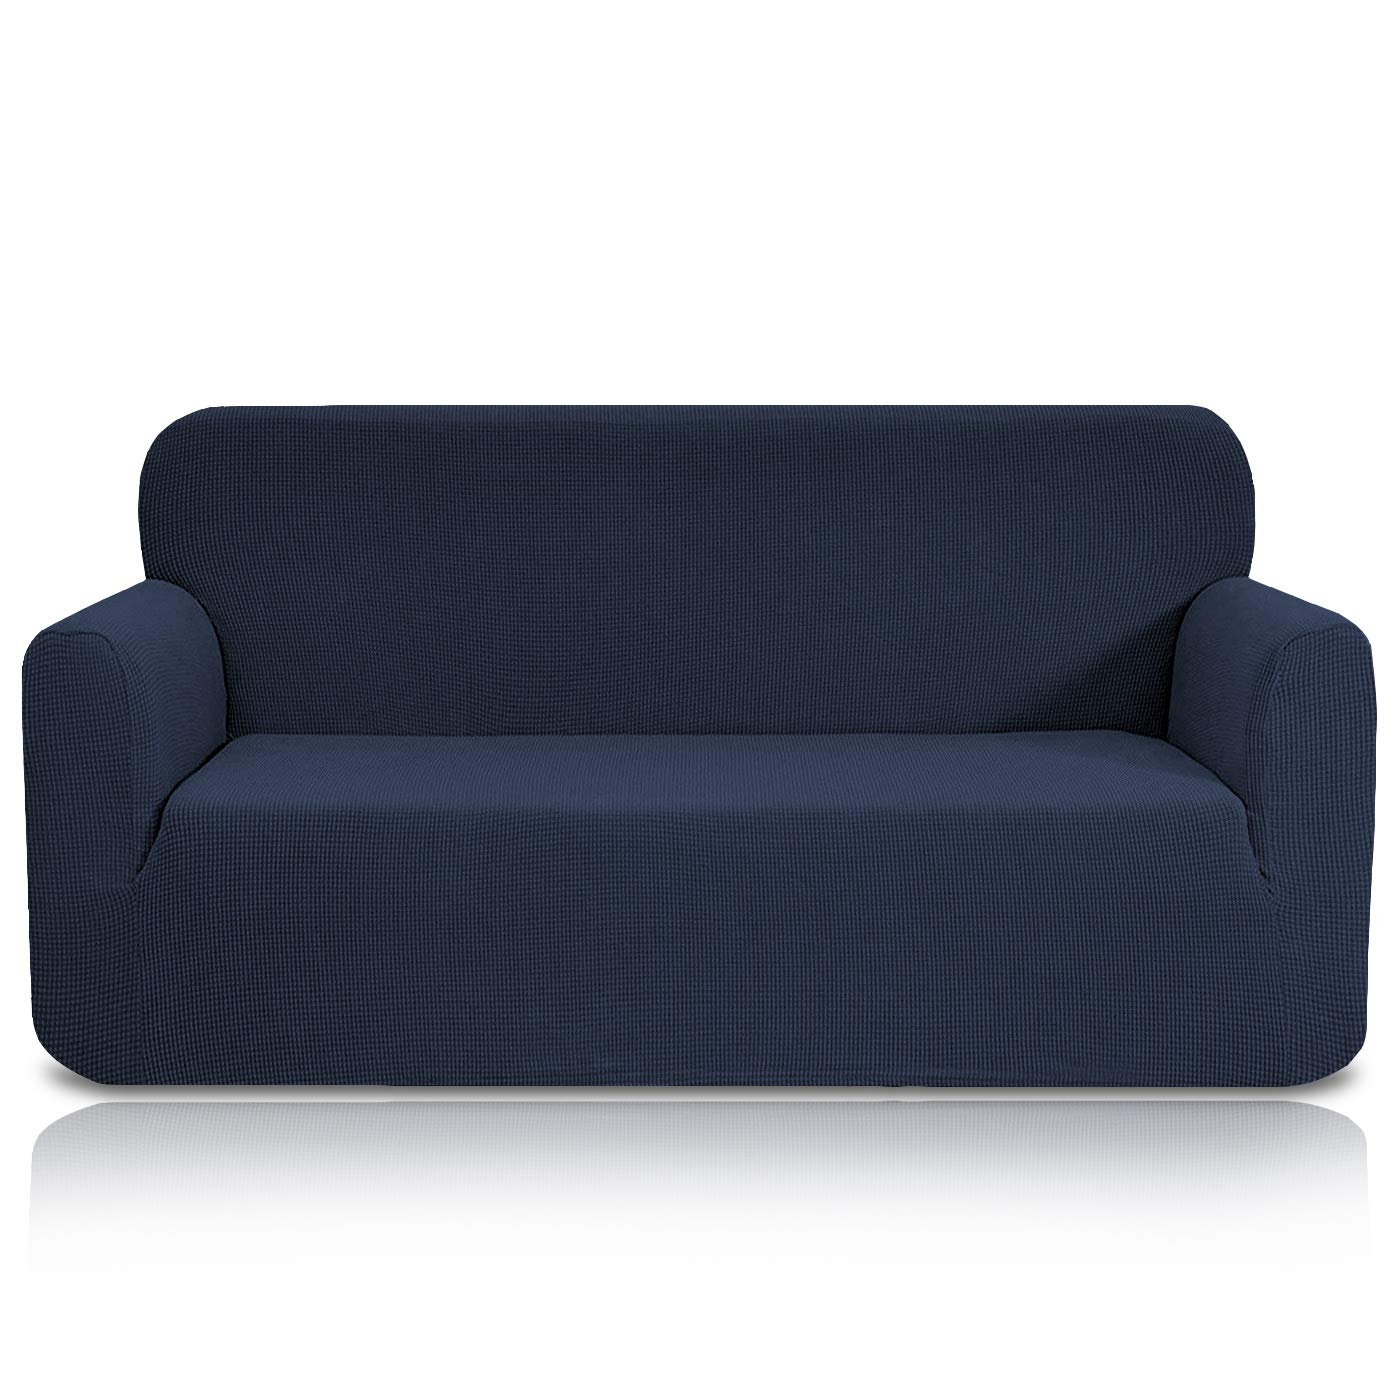 TRUE HOME COLLECTION Premium Jacquard Stretch Loveseat Slipcover, Stylish and Strapless Blue Color Couch Cover